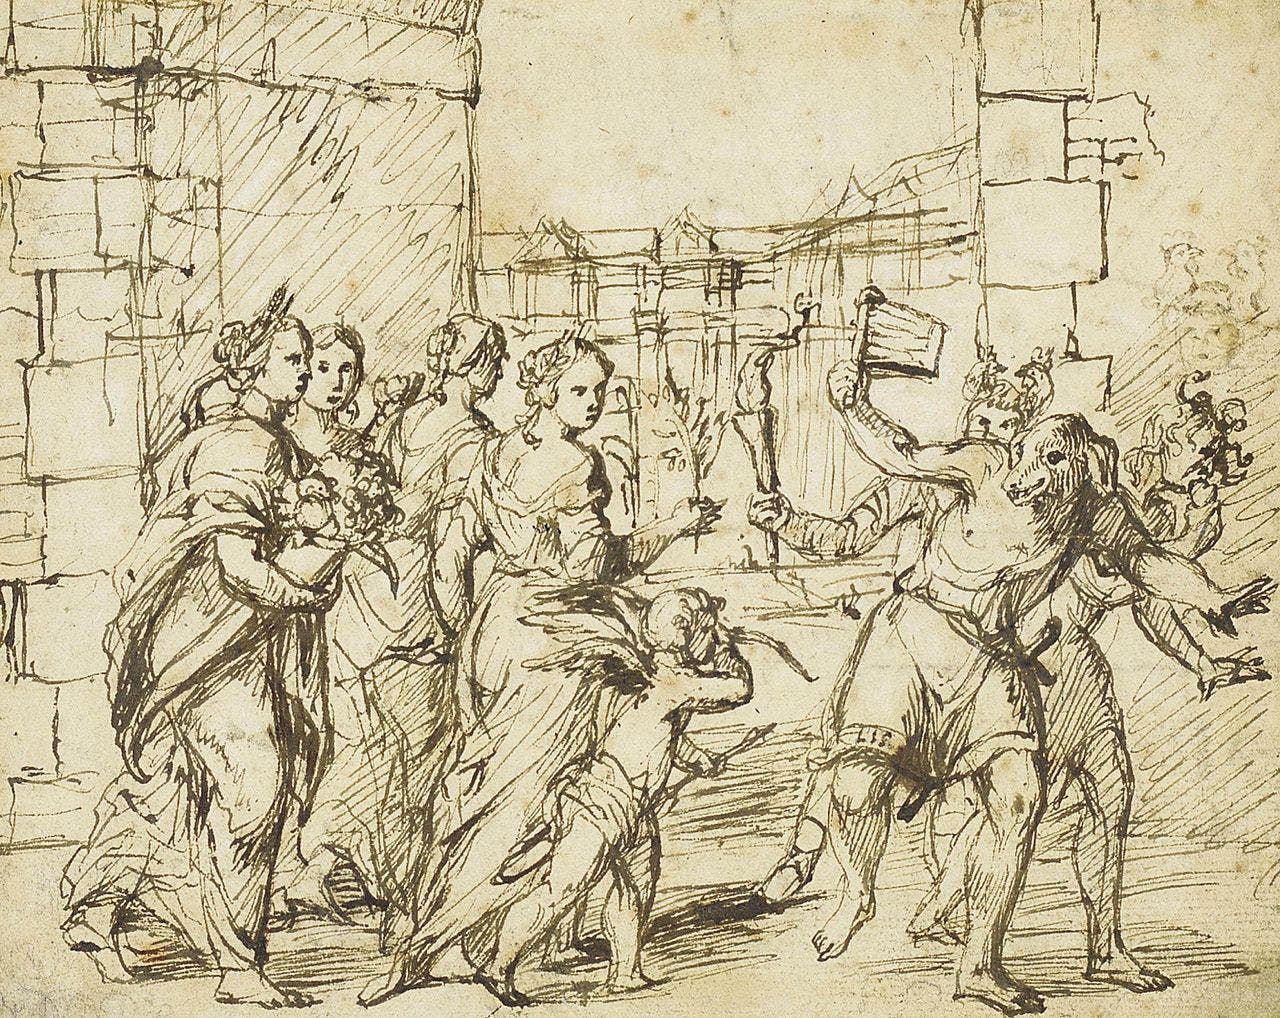 The Lupercalian Festival in Rome (ca. 1578–1610), drawing by the circle of Adam Elsheimer, showing the Luperci dressed as dogs and goats, with Cupid and personifications of fertility. (Wikimedia)